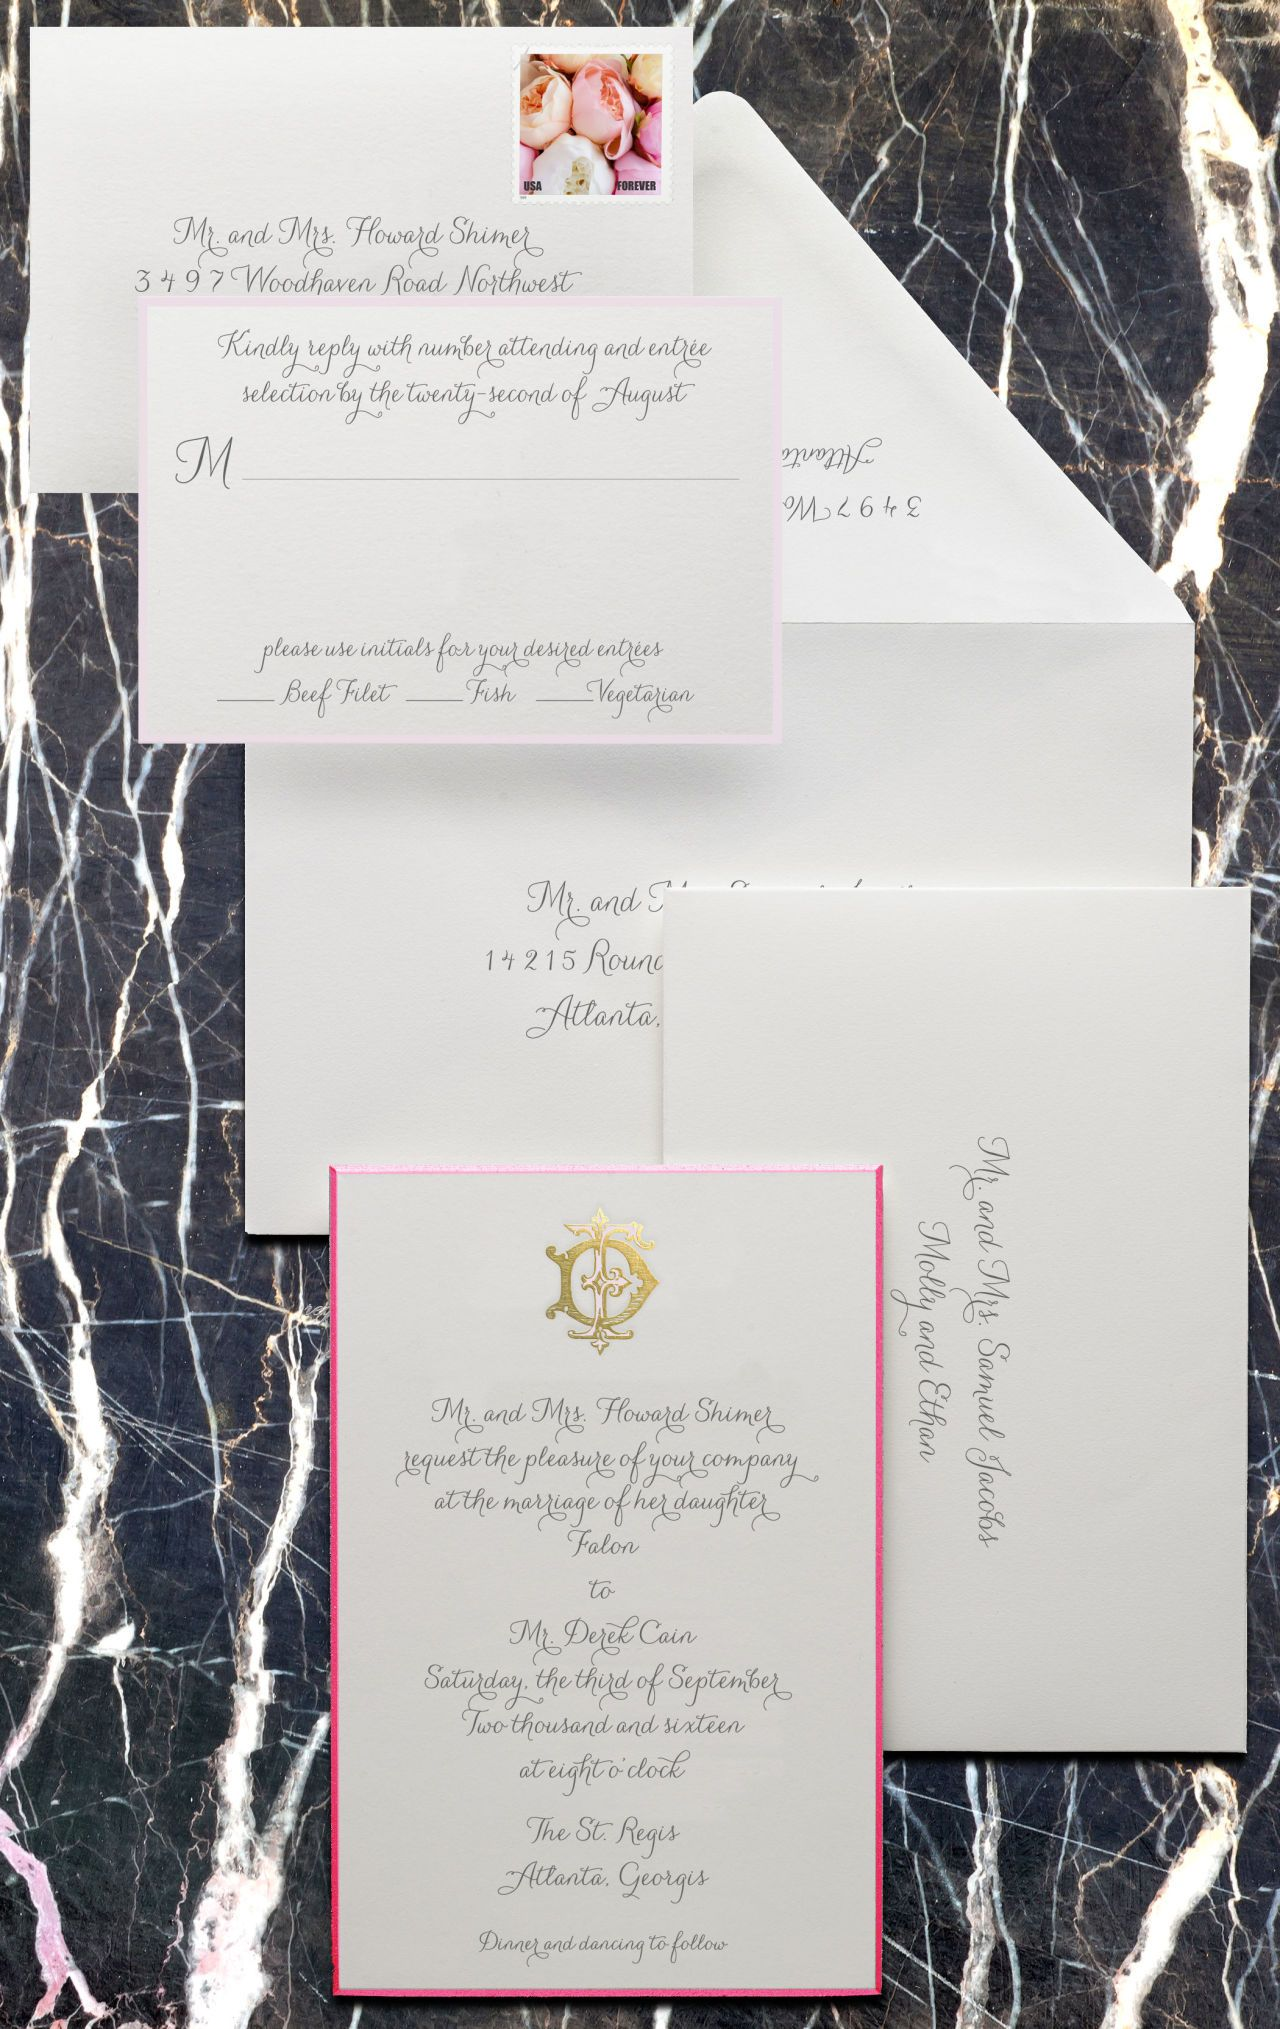 T&C Etiquette: How to Properly Write a Wedding Invitation | Wedding ...